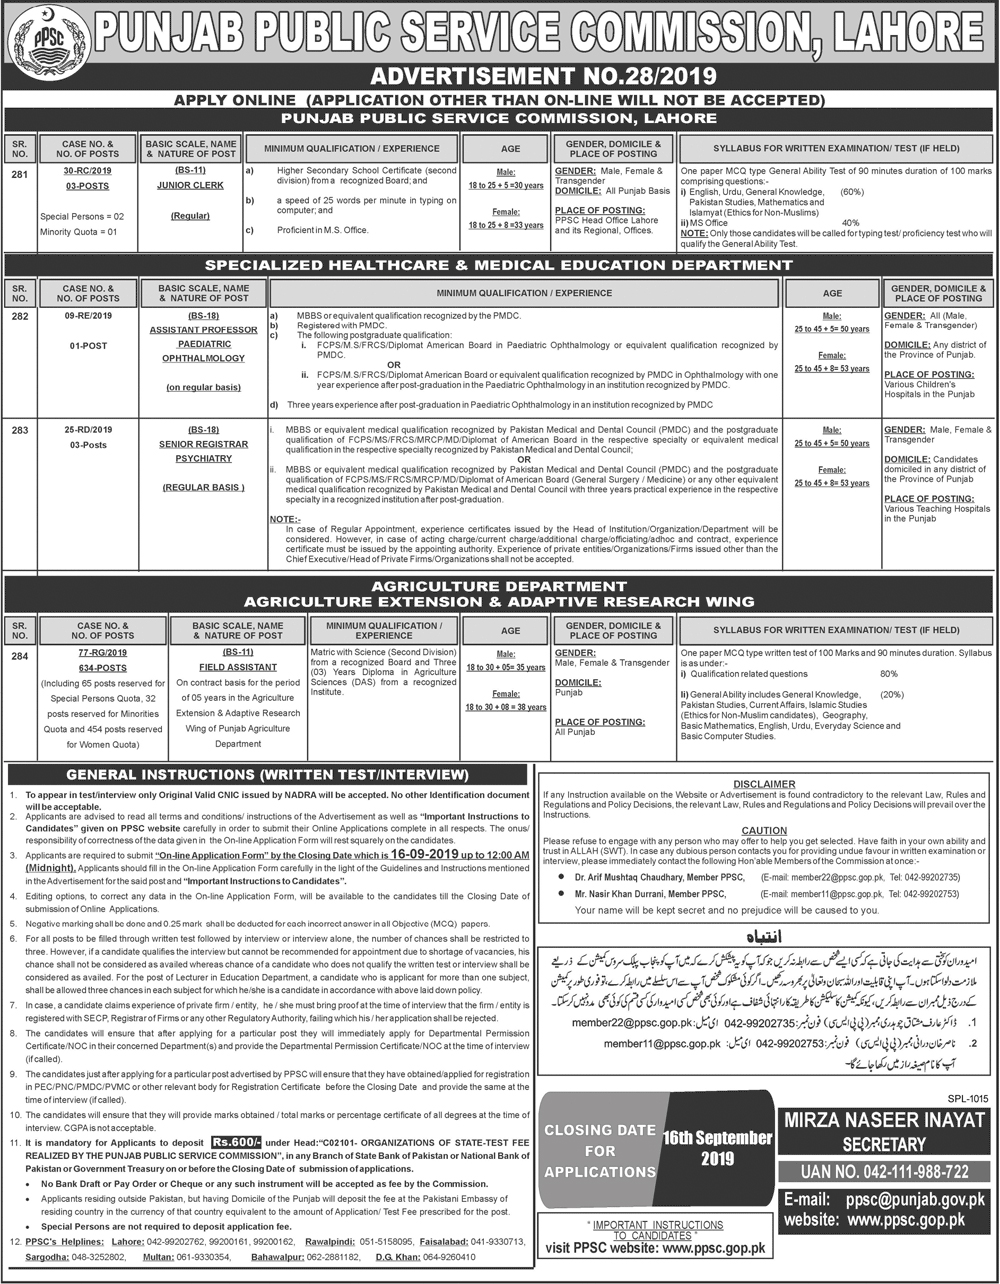 Latest Advertisement No 28/2019 PPSC Jobs 2019 Apply online